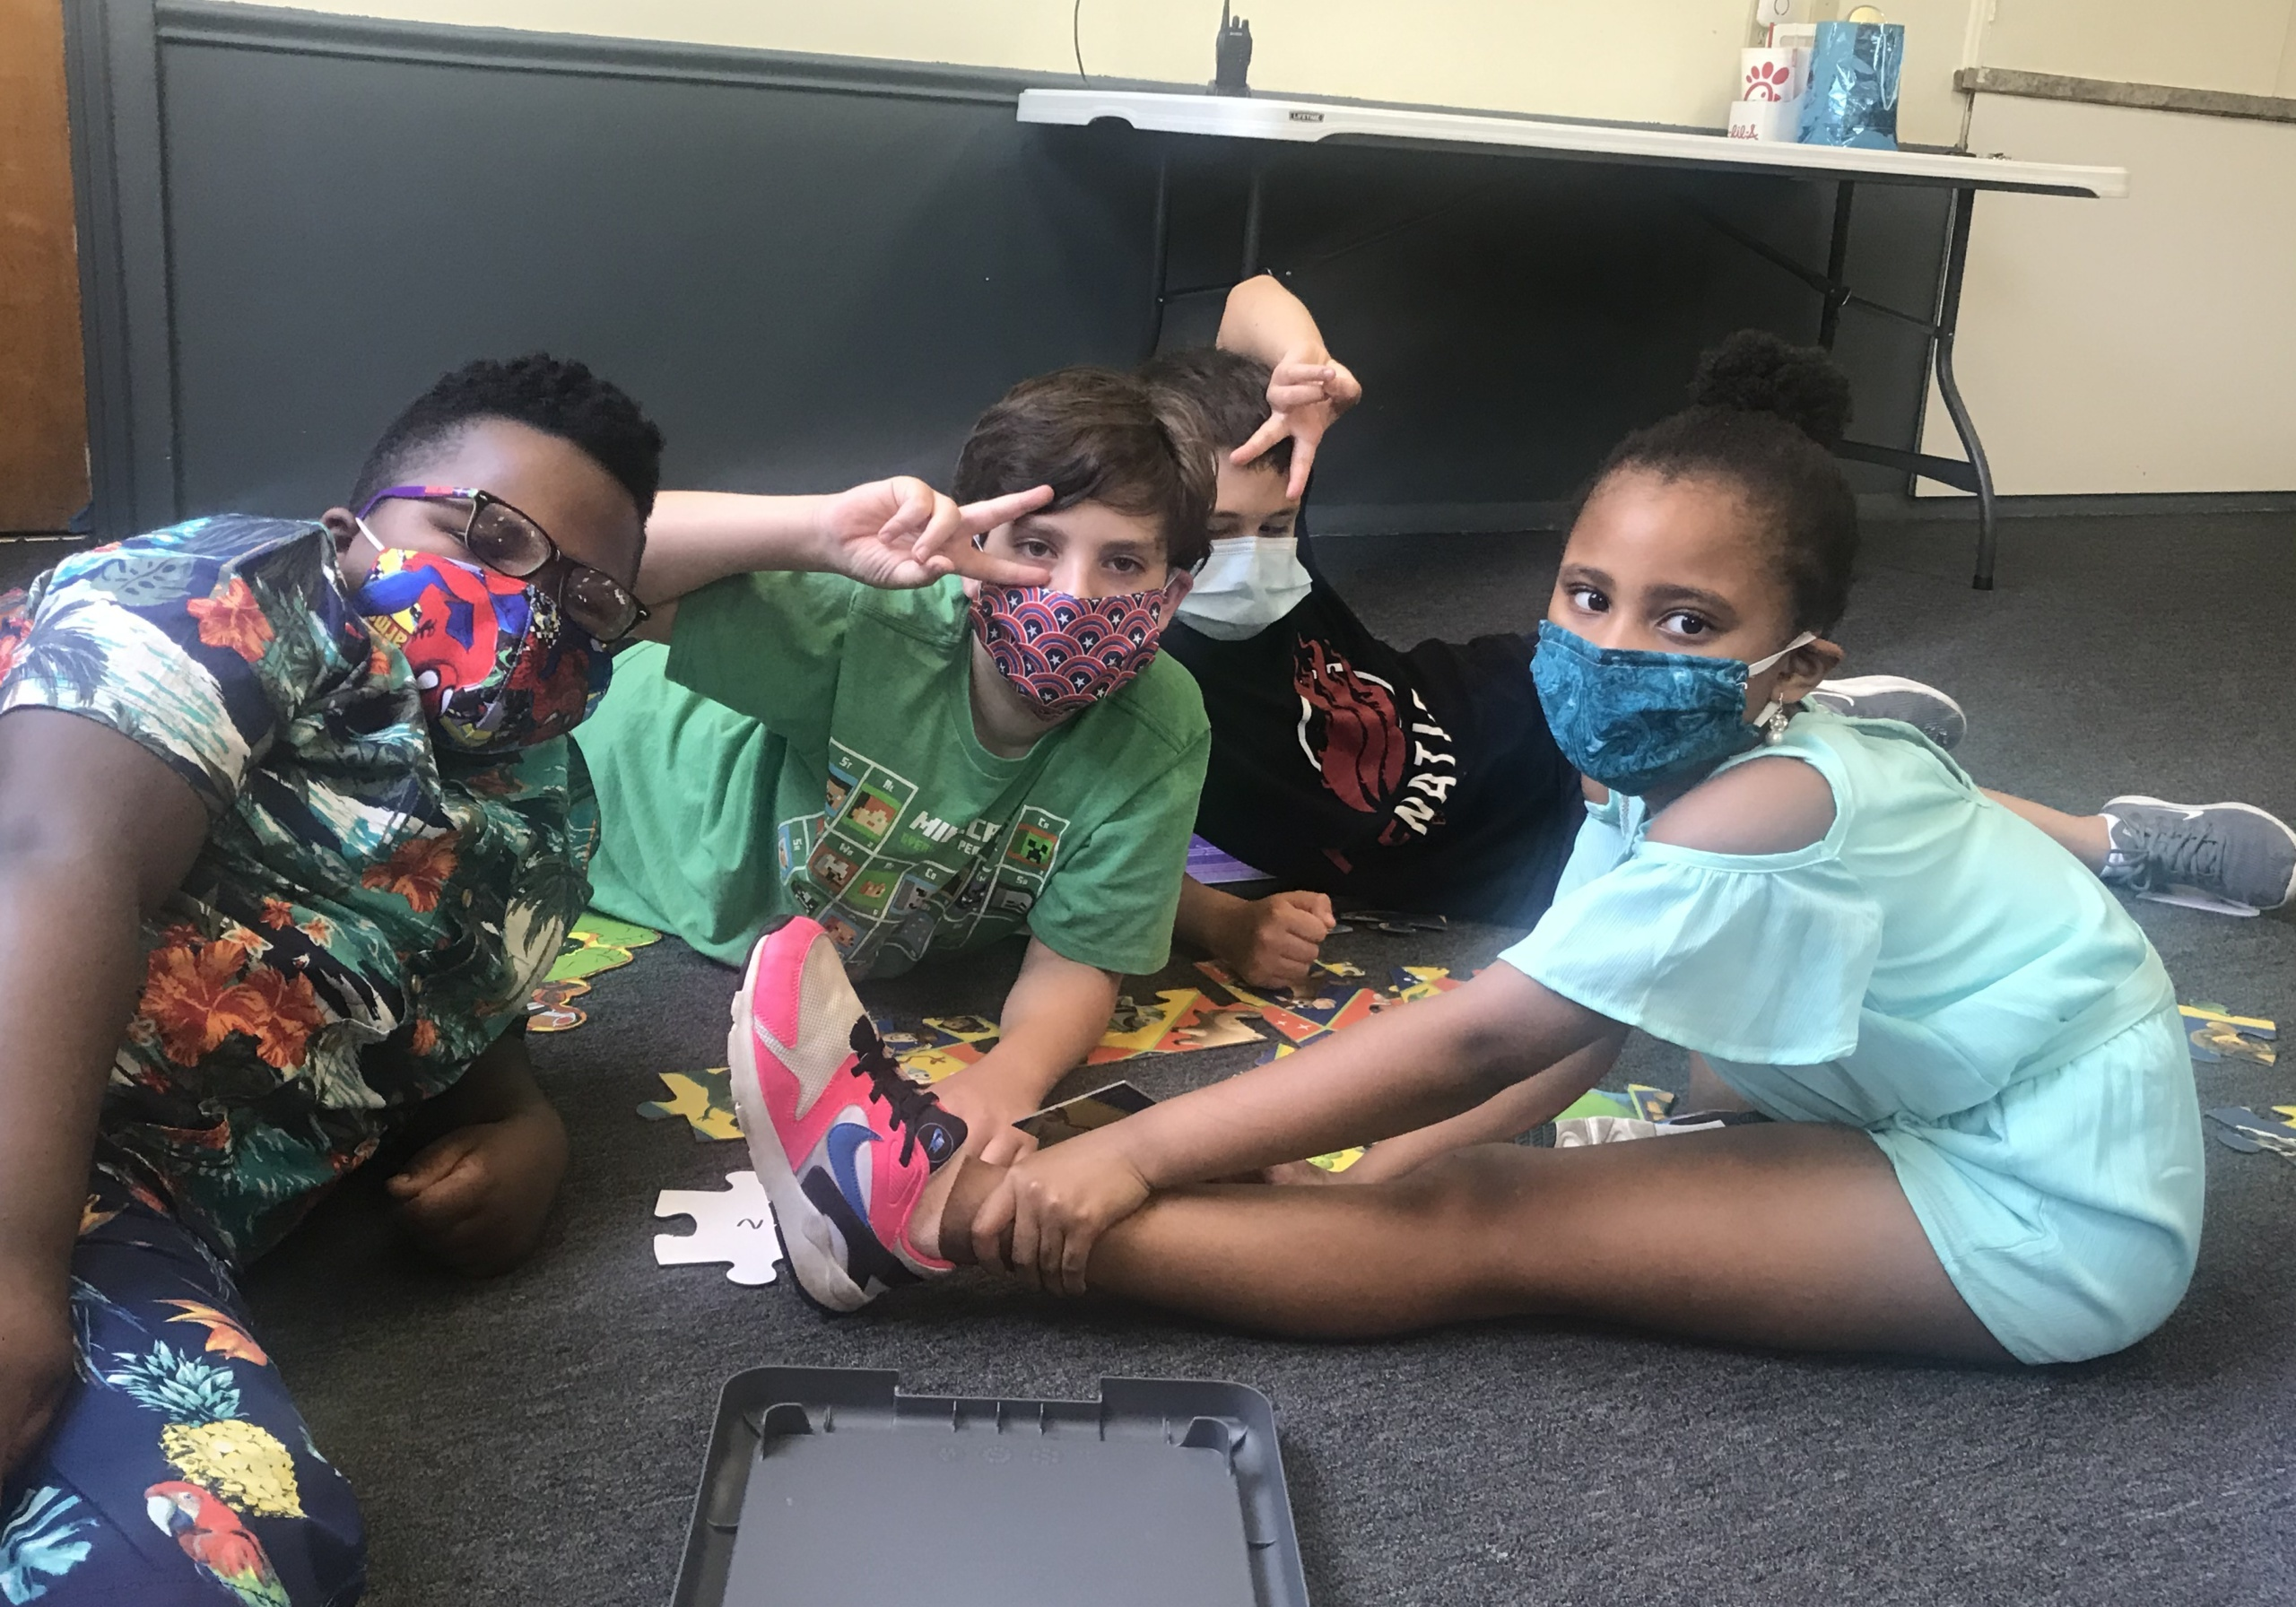 Active Minds has designed a unique learning support program to help support children during the digital learning period this school year.